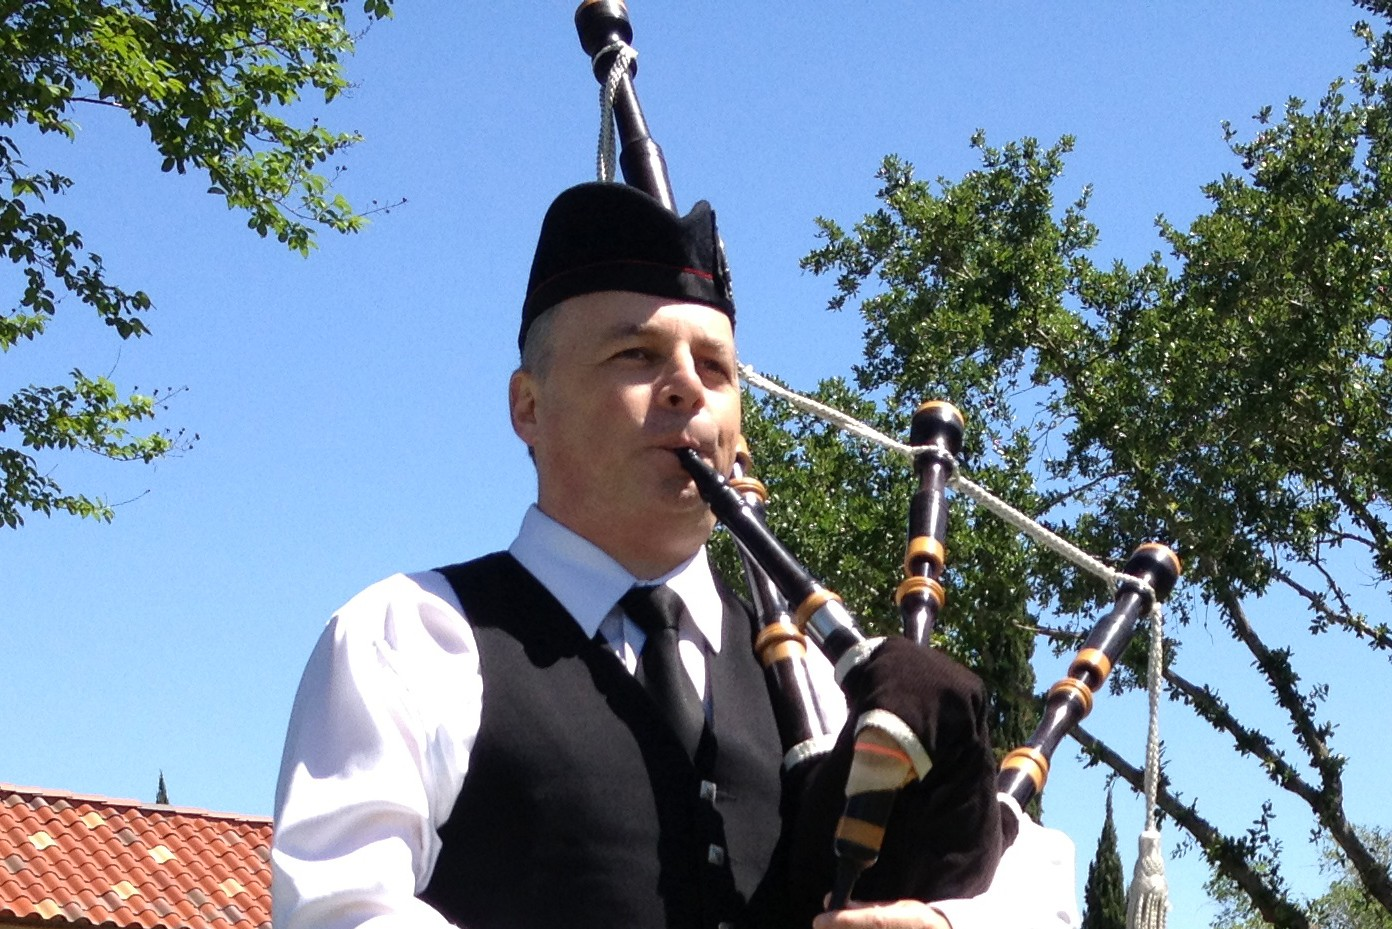 Funerals and bagpipes - Richard Kean bagpiper in Houston